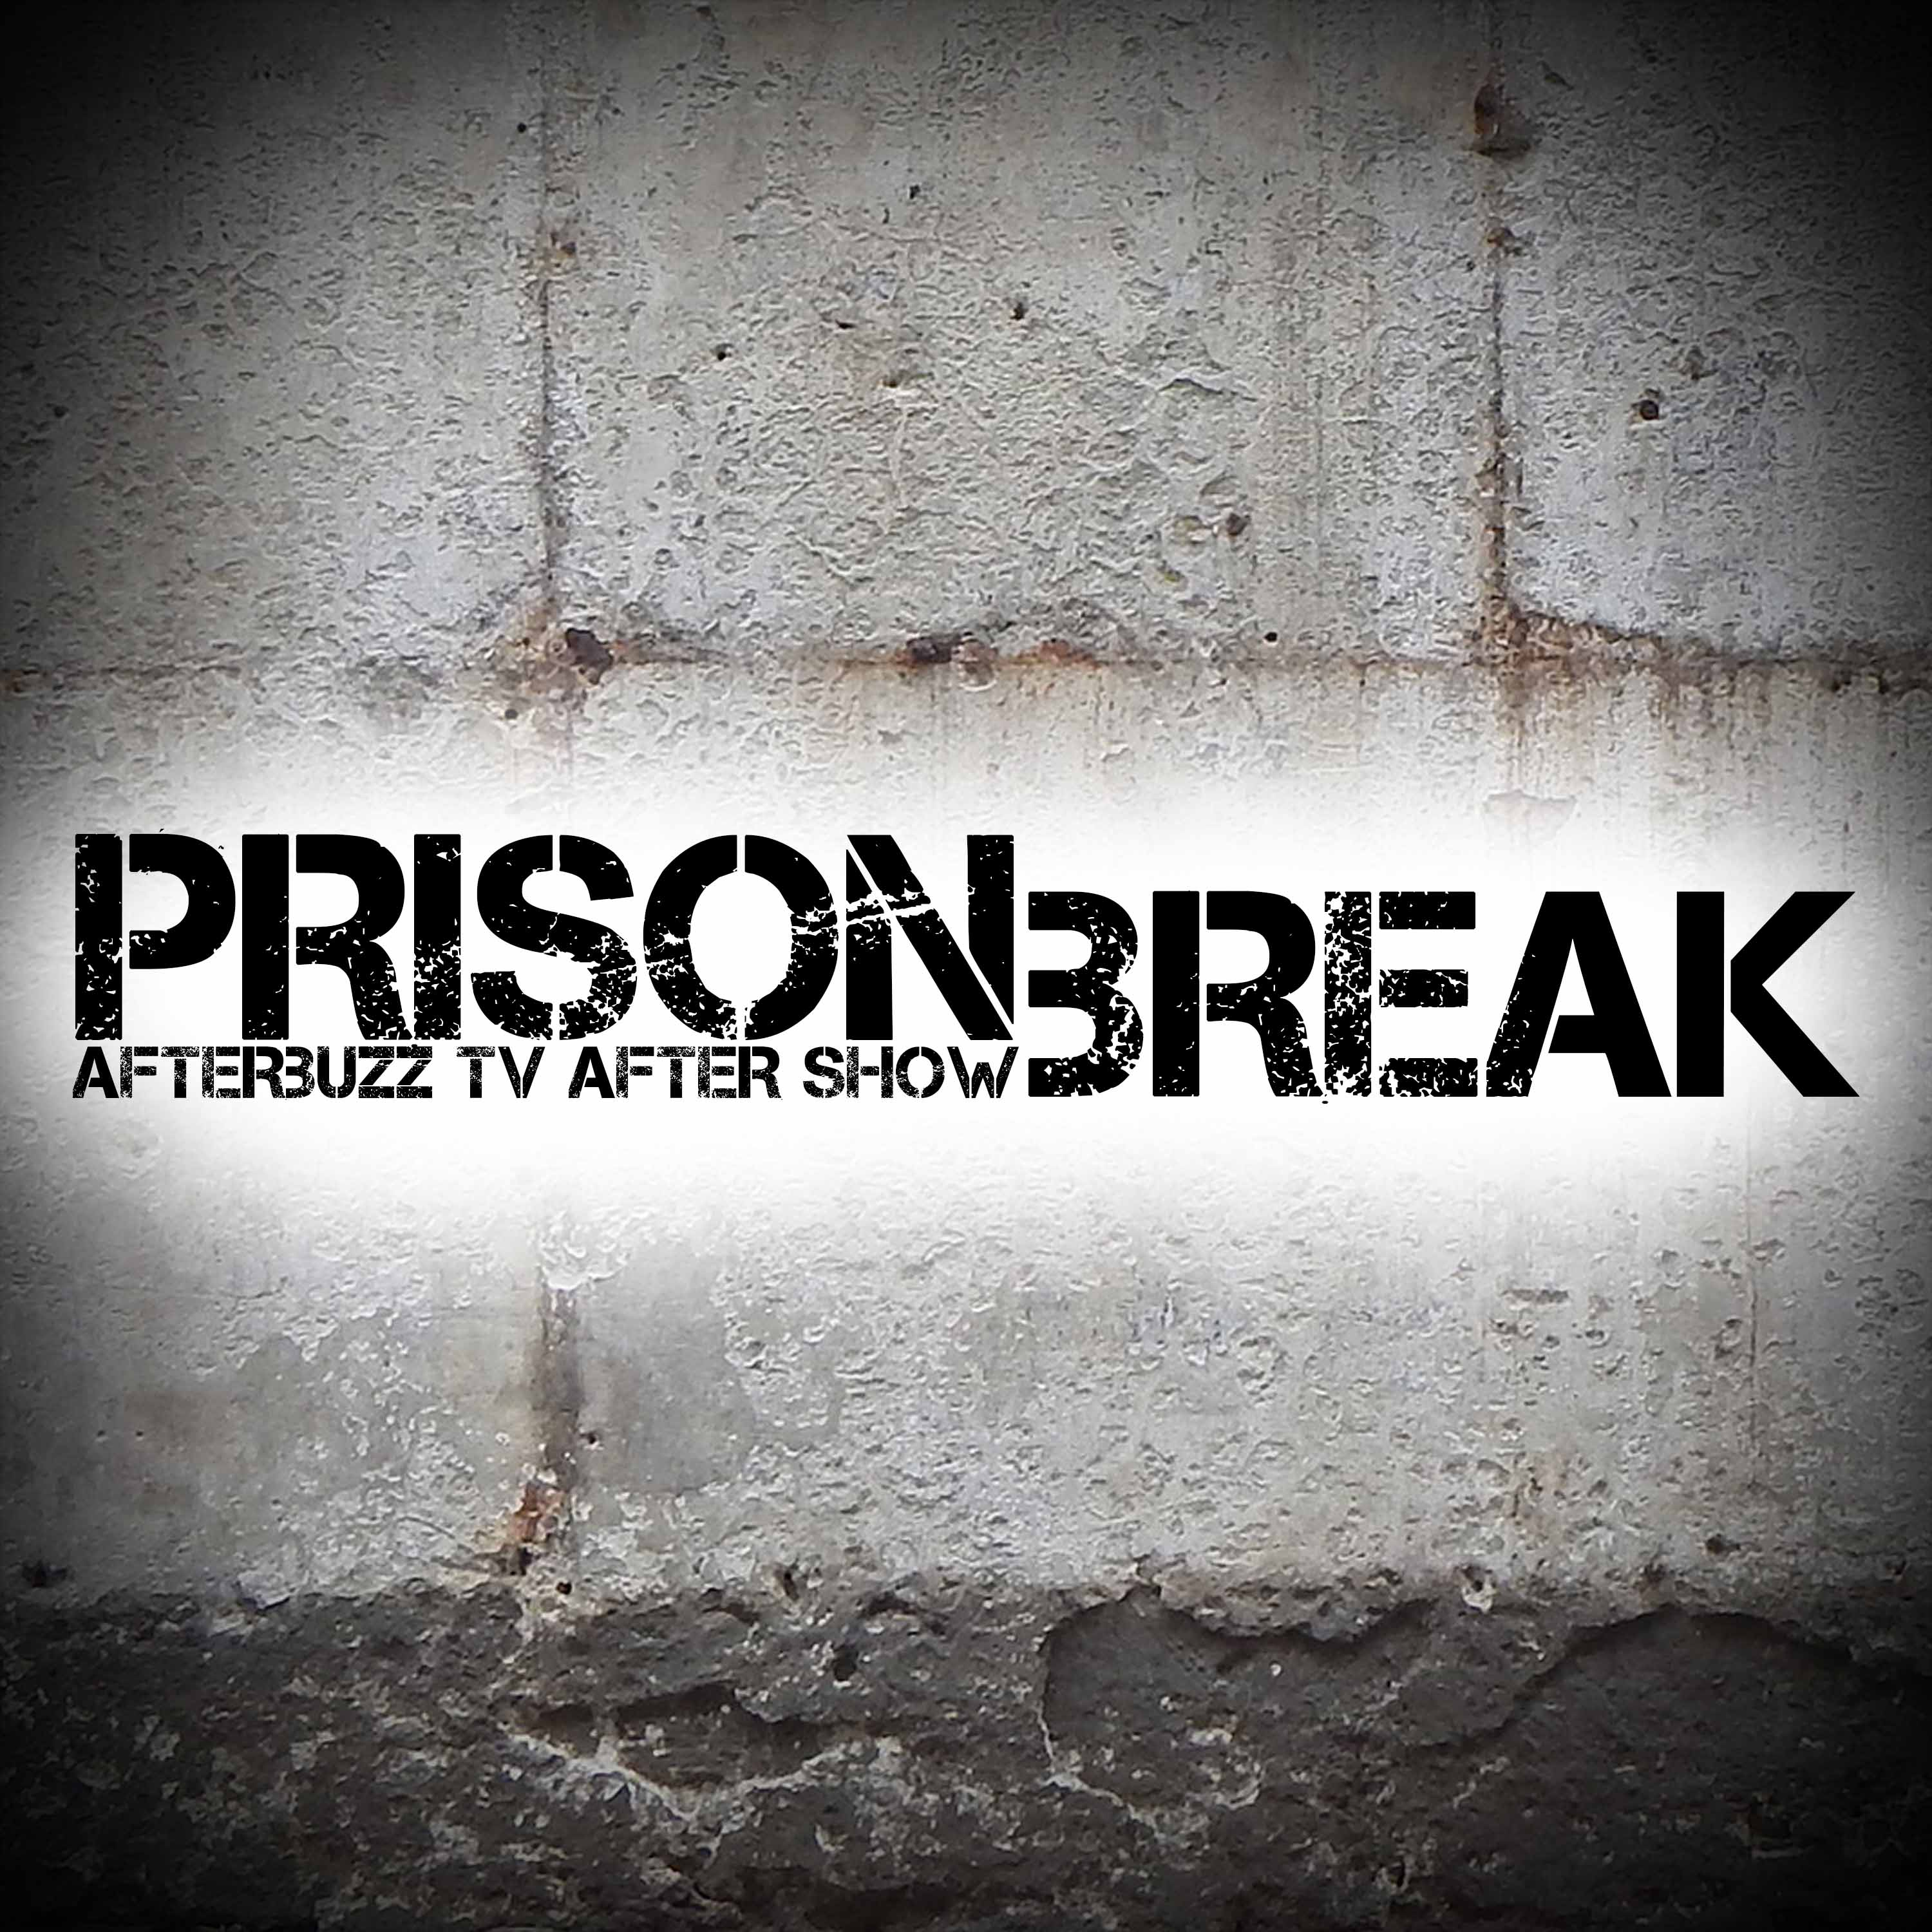 Prison Break After Show